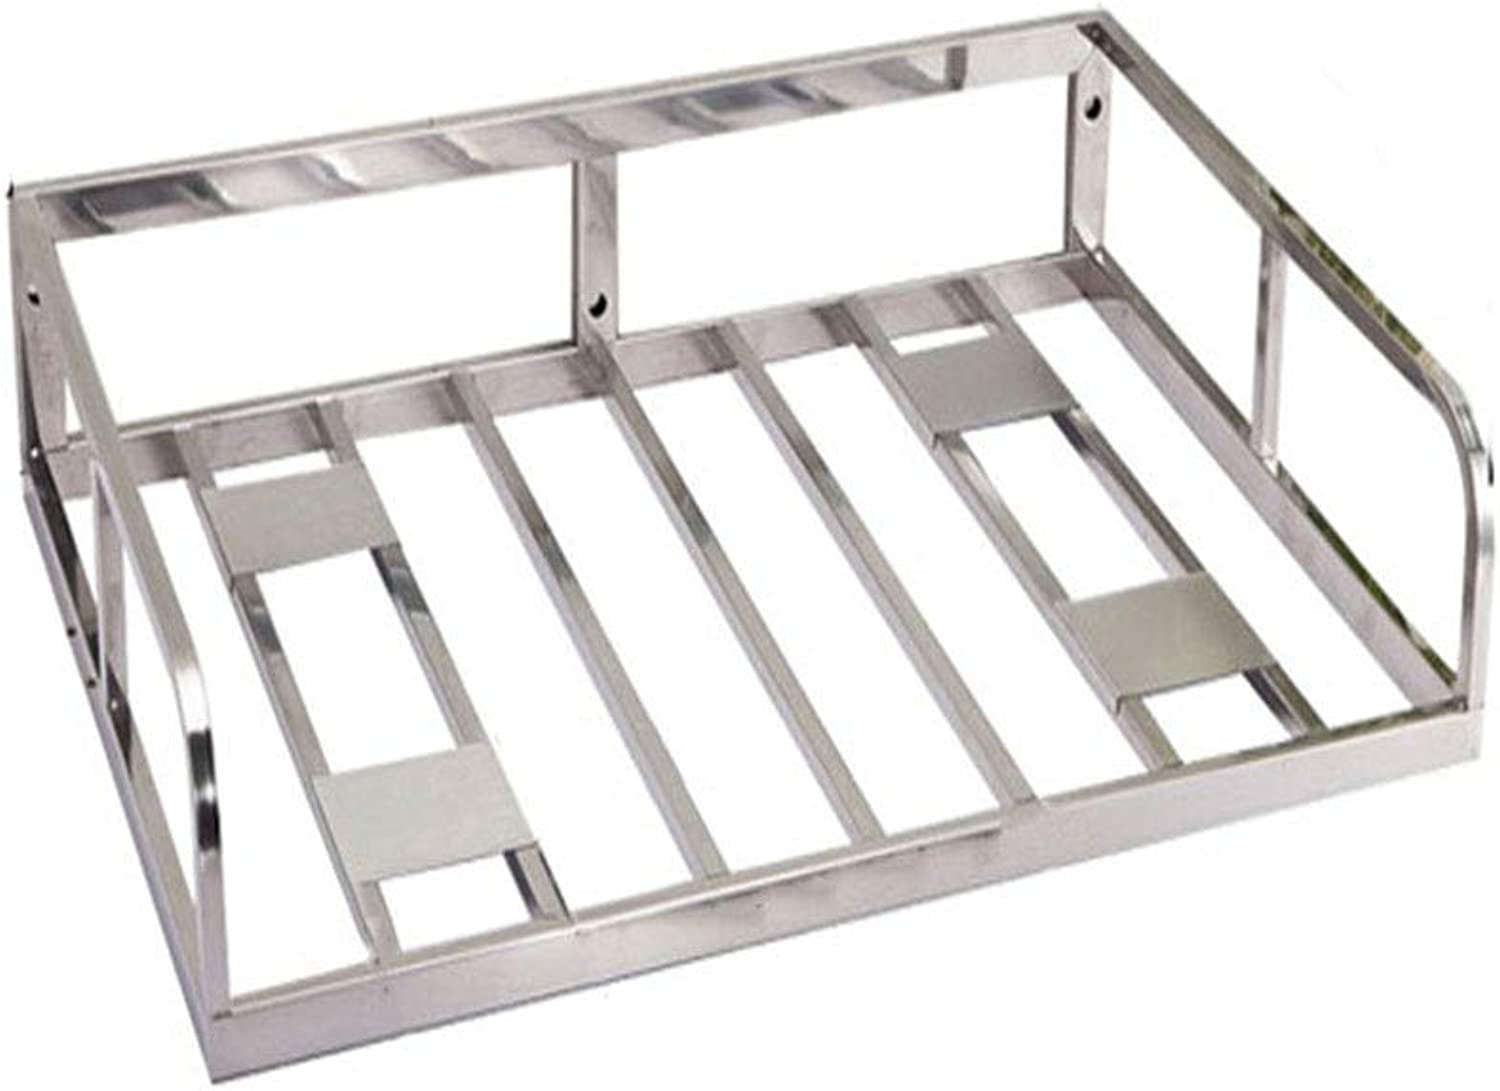 Kitchen Shelf Microwave Shelf Load-Bearing Strong Thickening Widened Stainless Steel Wall-Mounted Kitchen Storage Single Layer 21.6  4.1  15 Inches